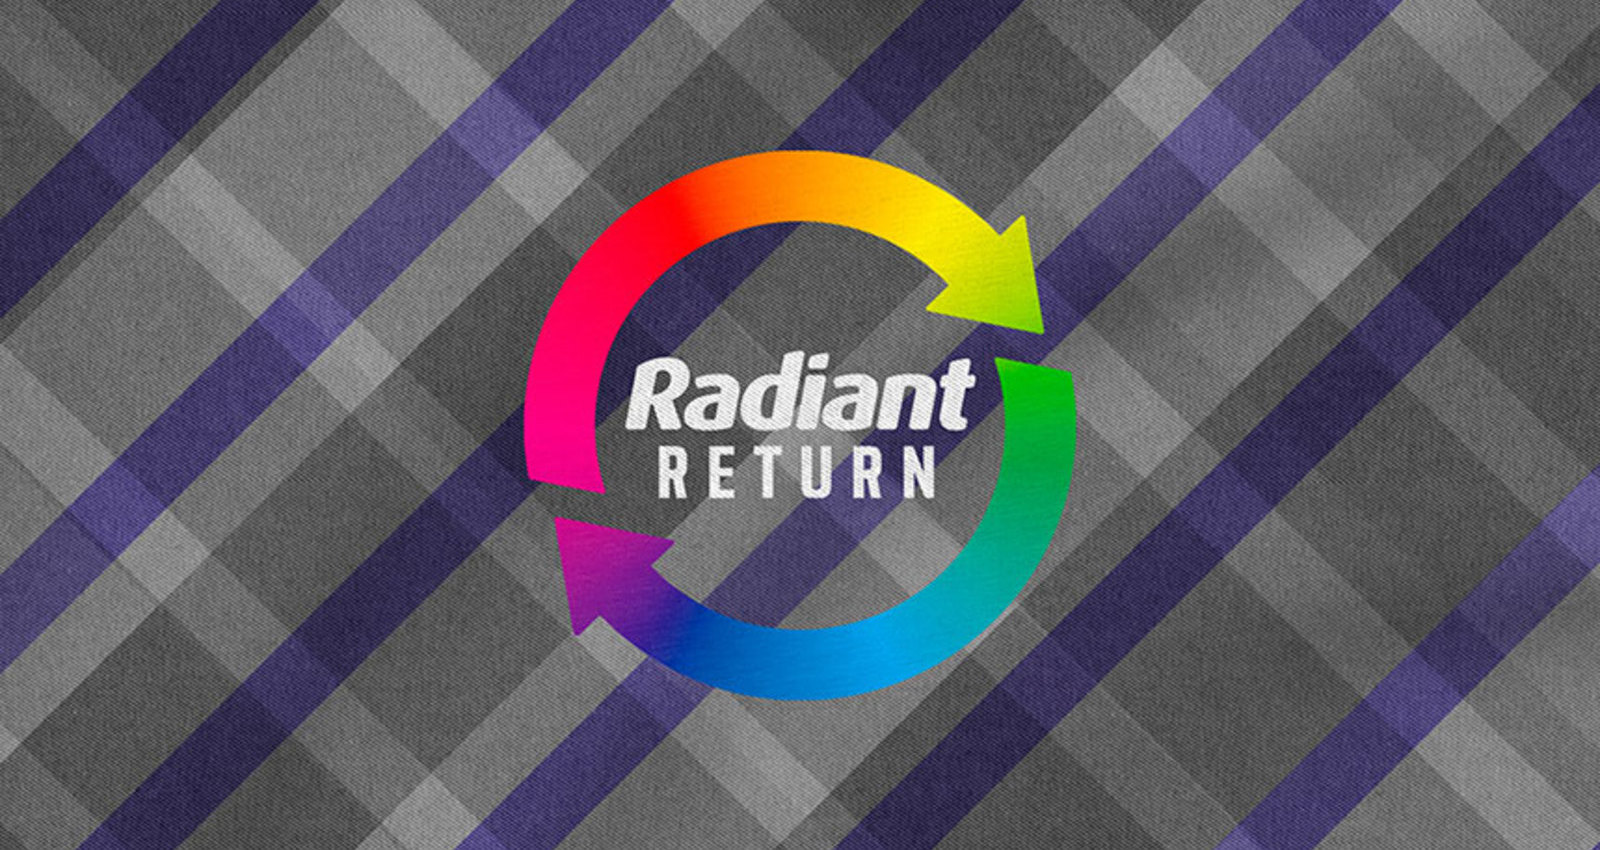 Radiant Return